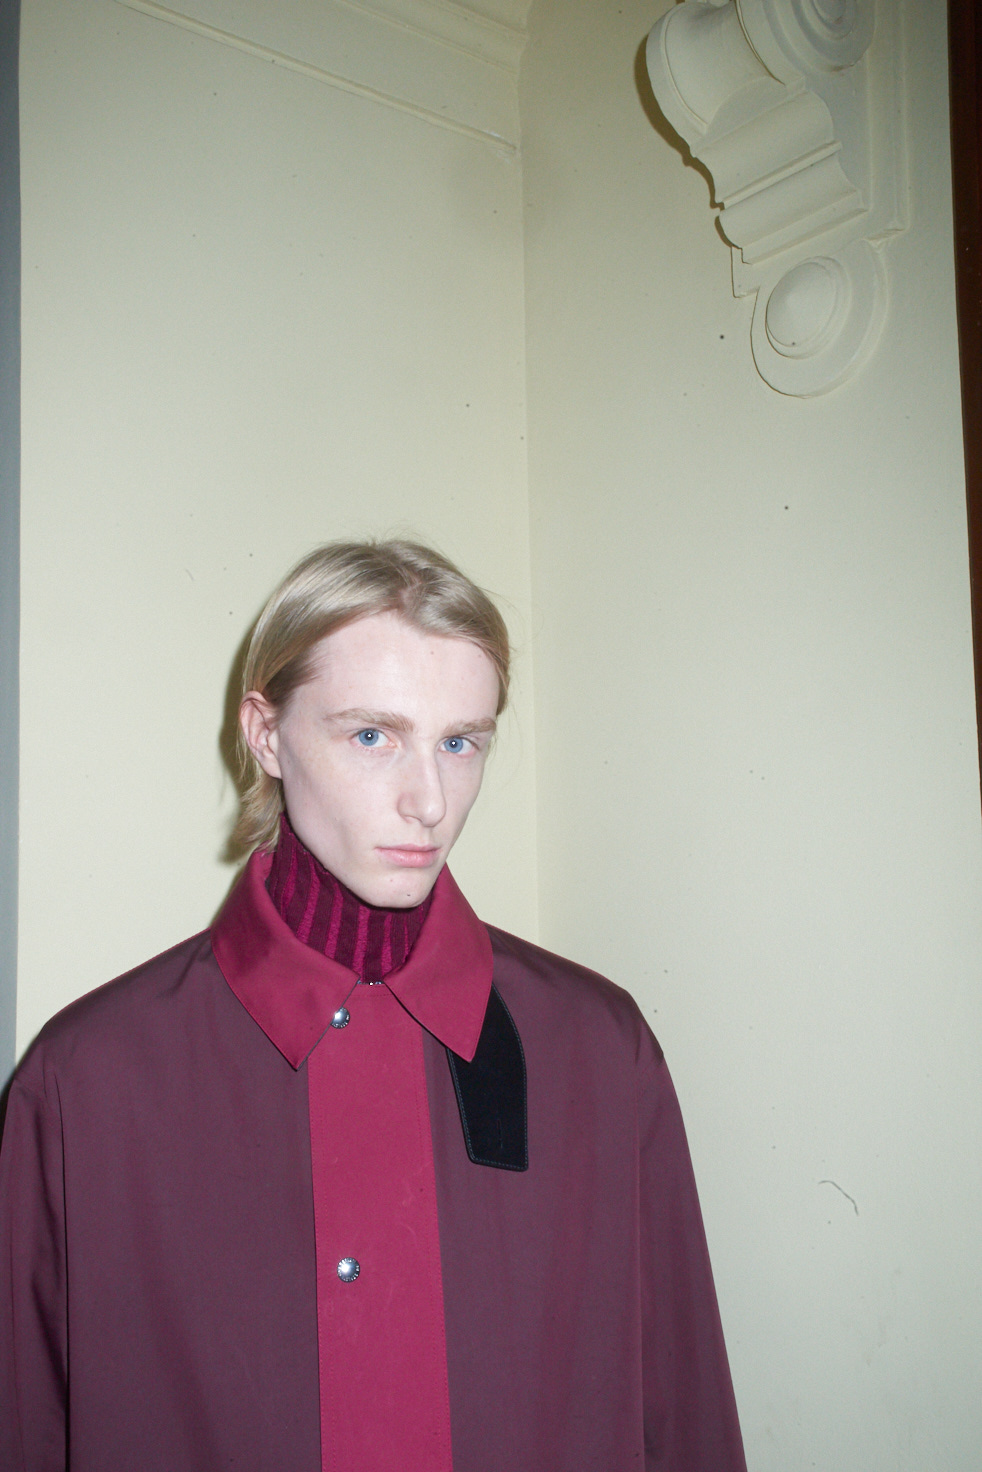 BERLUTI_FW19_Backstage_BTBonline_Behind_The_Blinds_Magazine_Hugo denis-queinec_AES2166.jpg